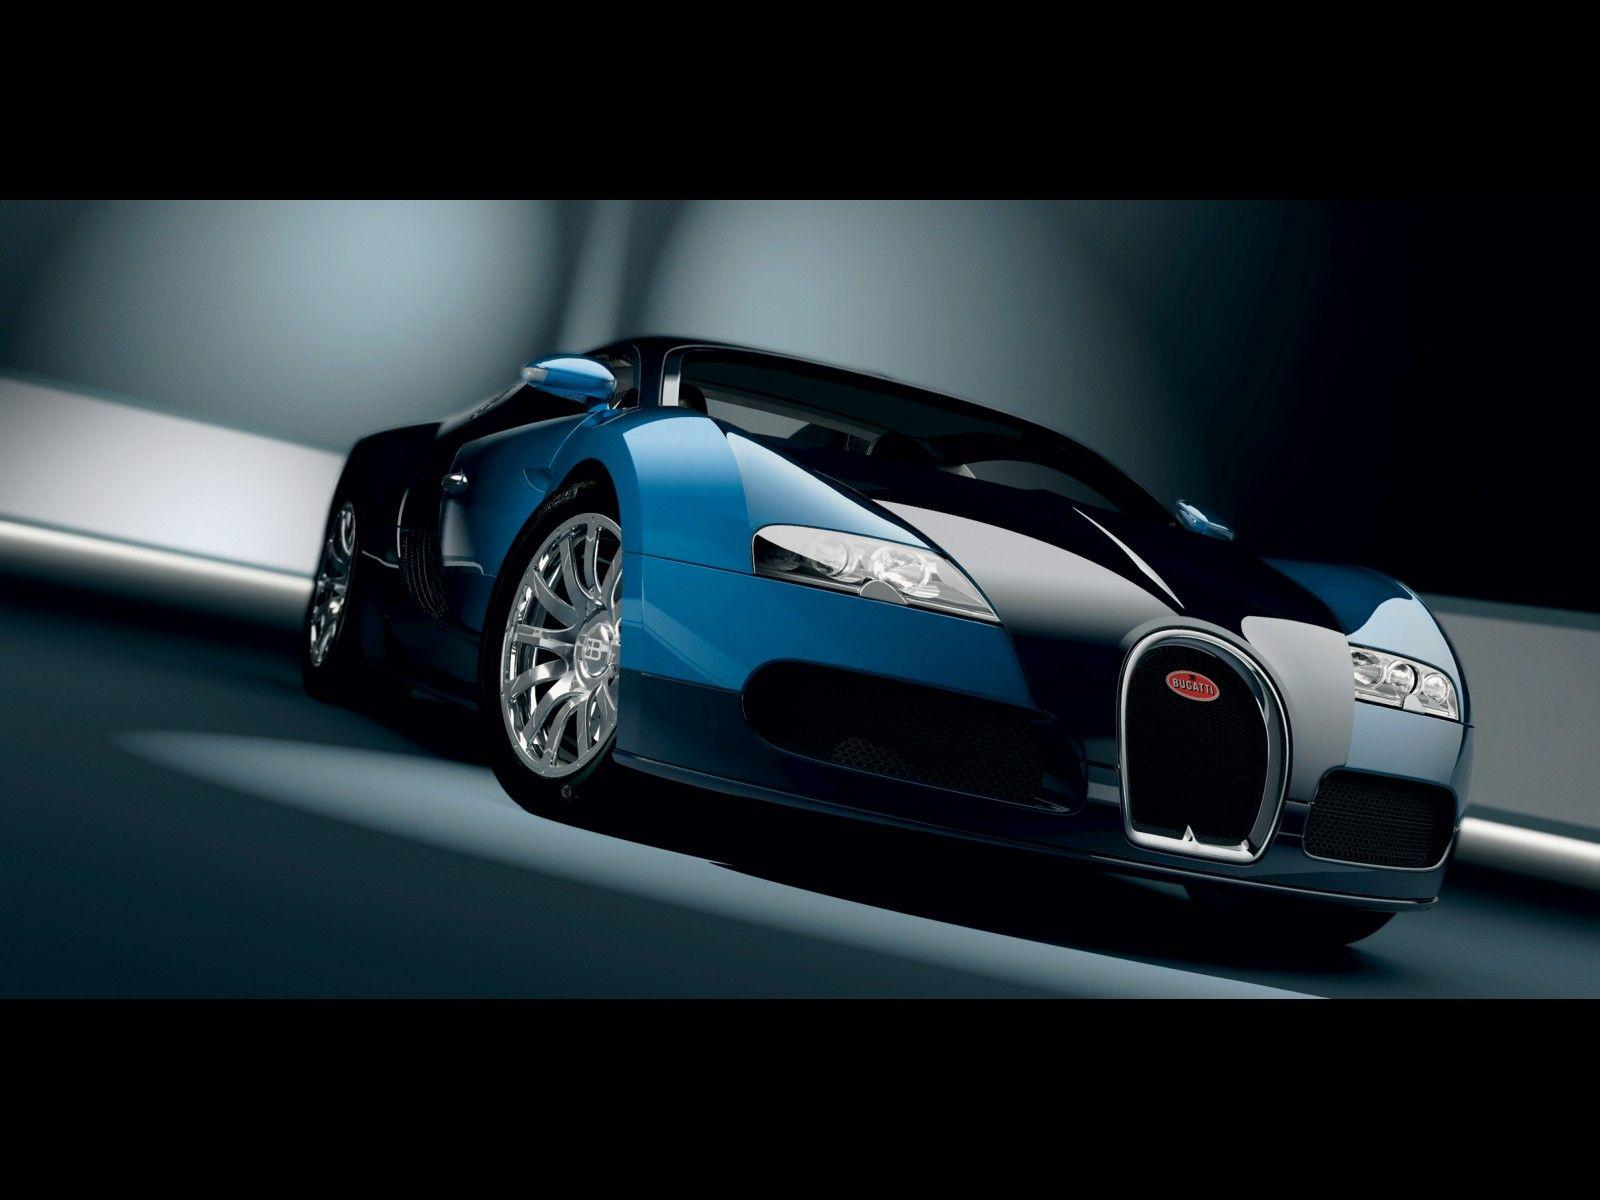 Bugatti Veyron HD Wallpapers Wallpaper